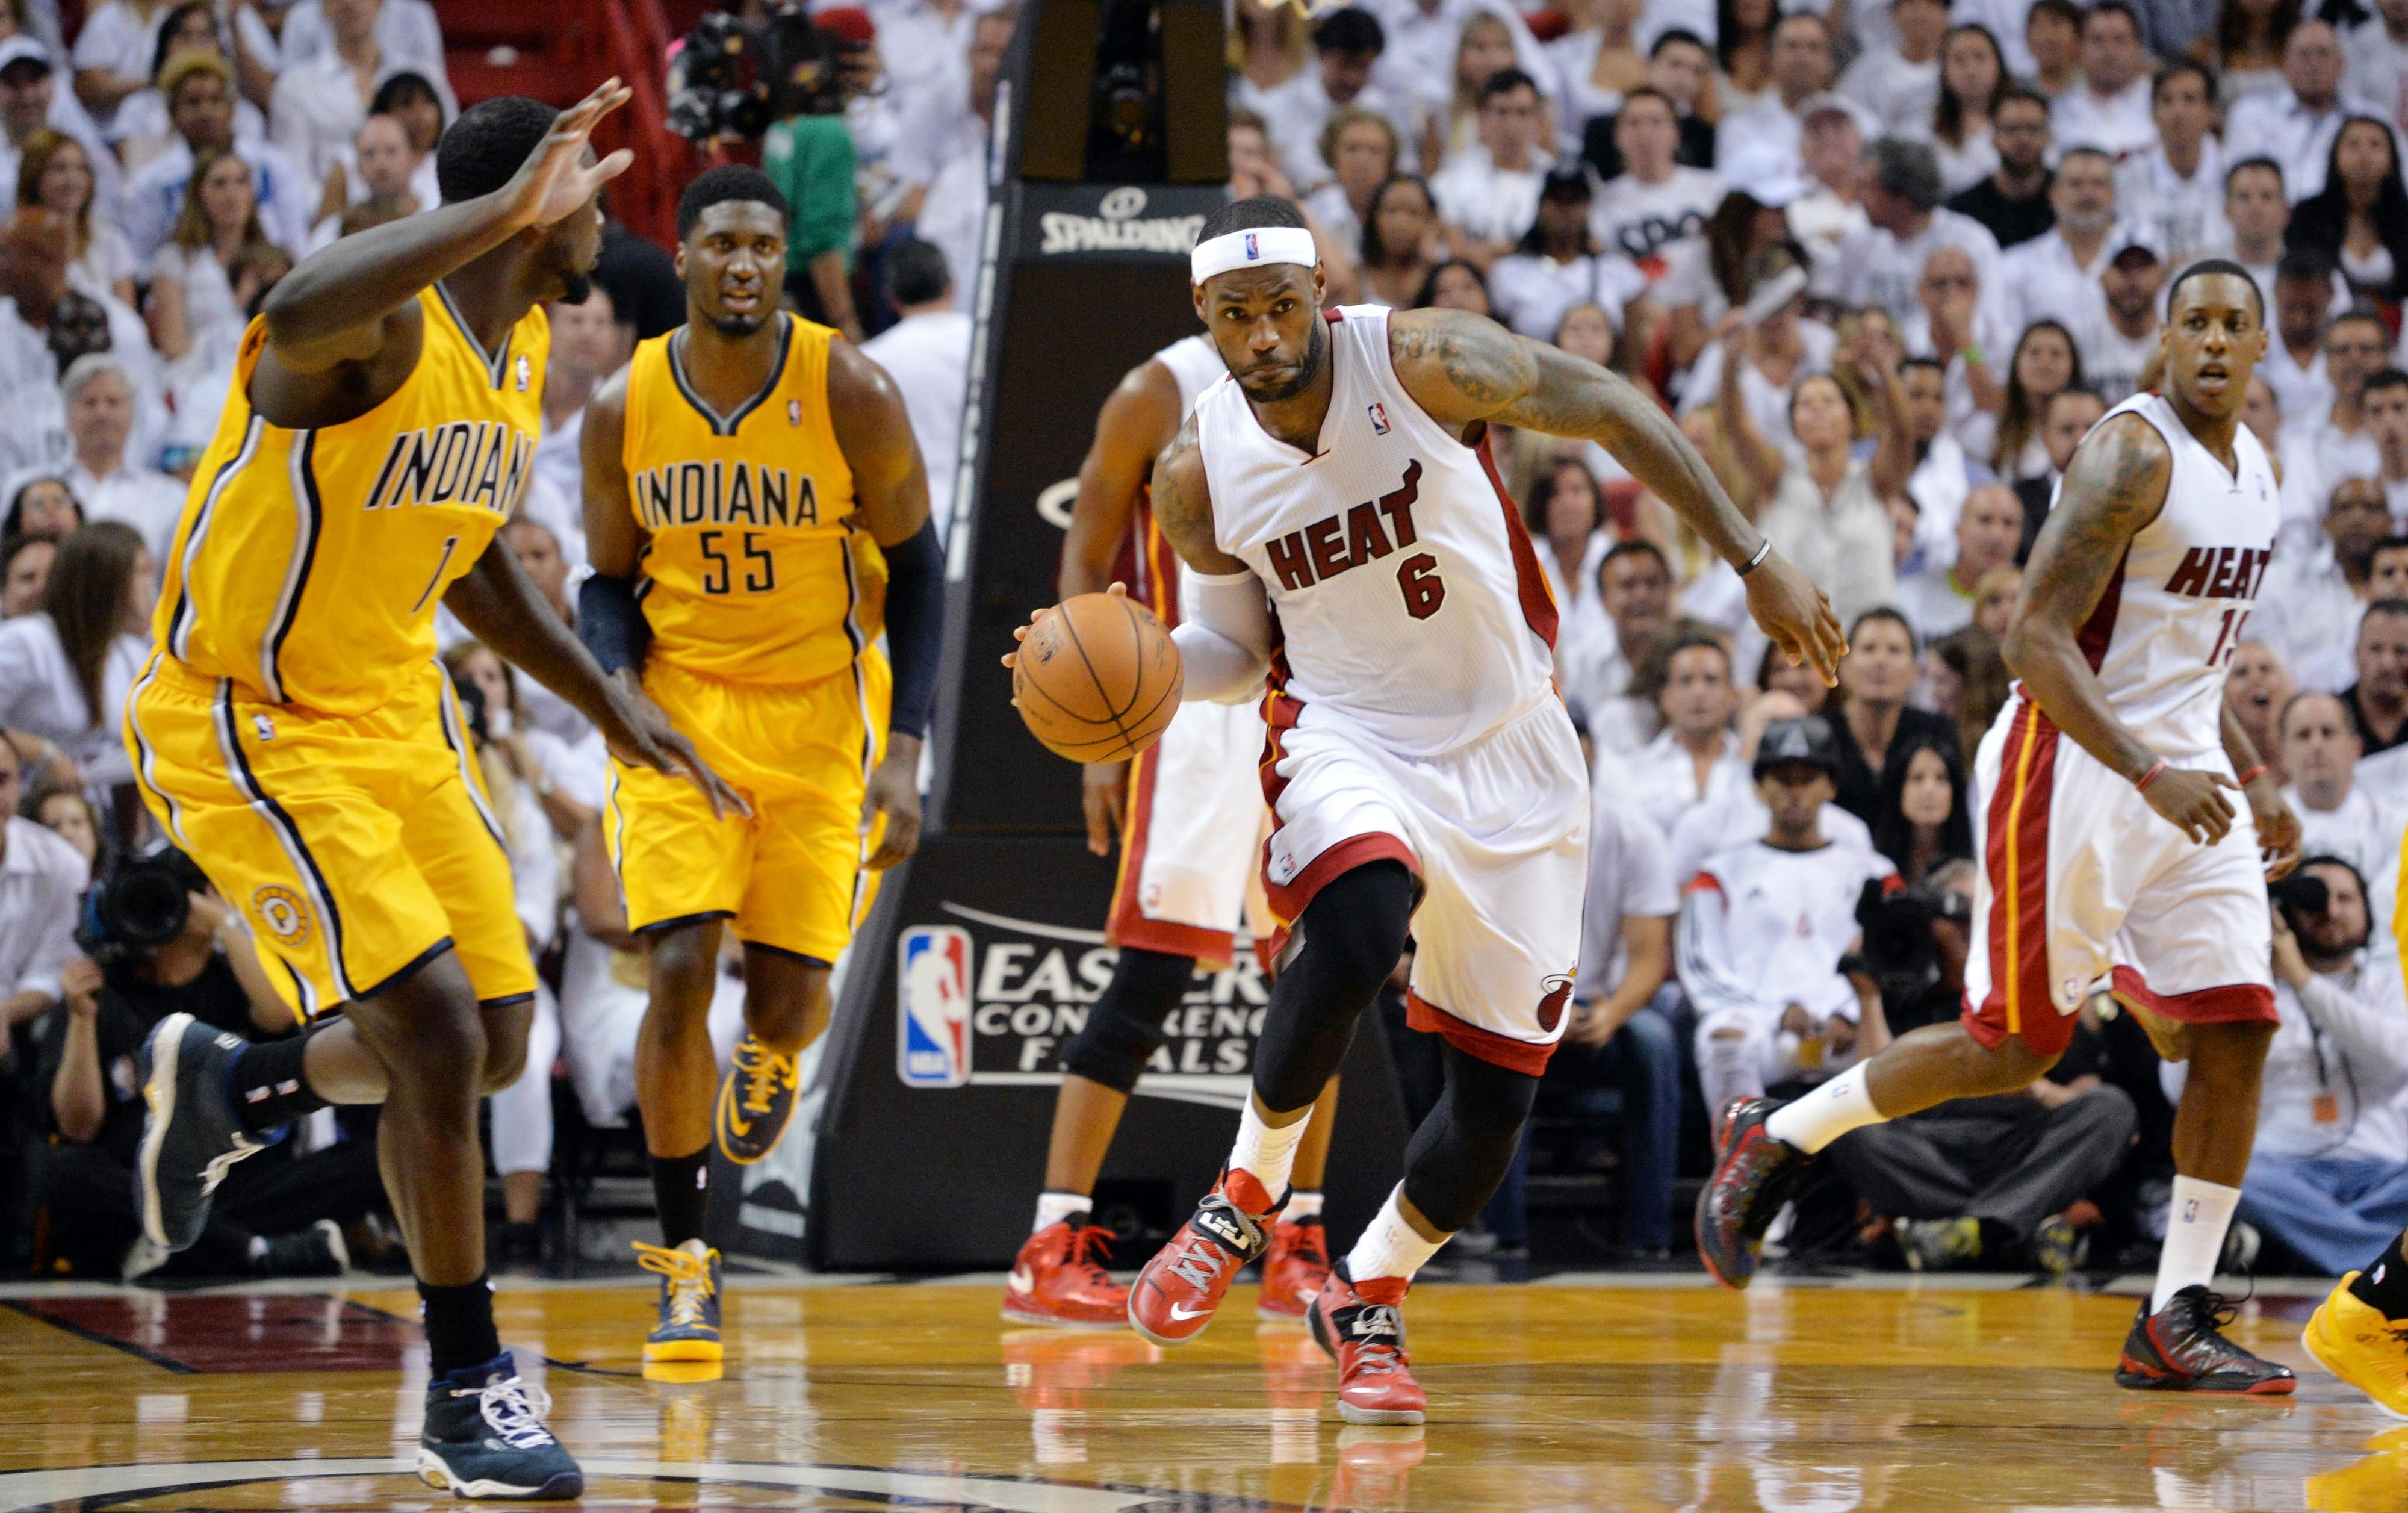 Pacers vs. Heat final score, NBA playoffs 2014: Miami heading to NBA Finals again after 117-92 victory over Indiana